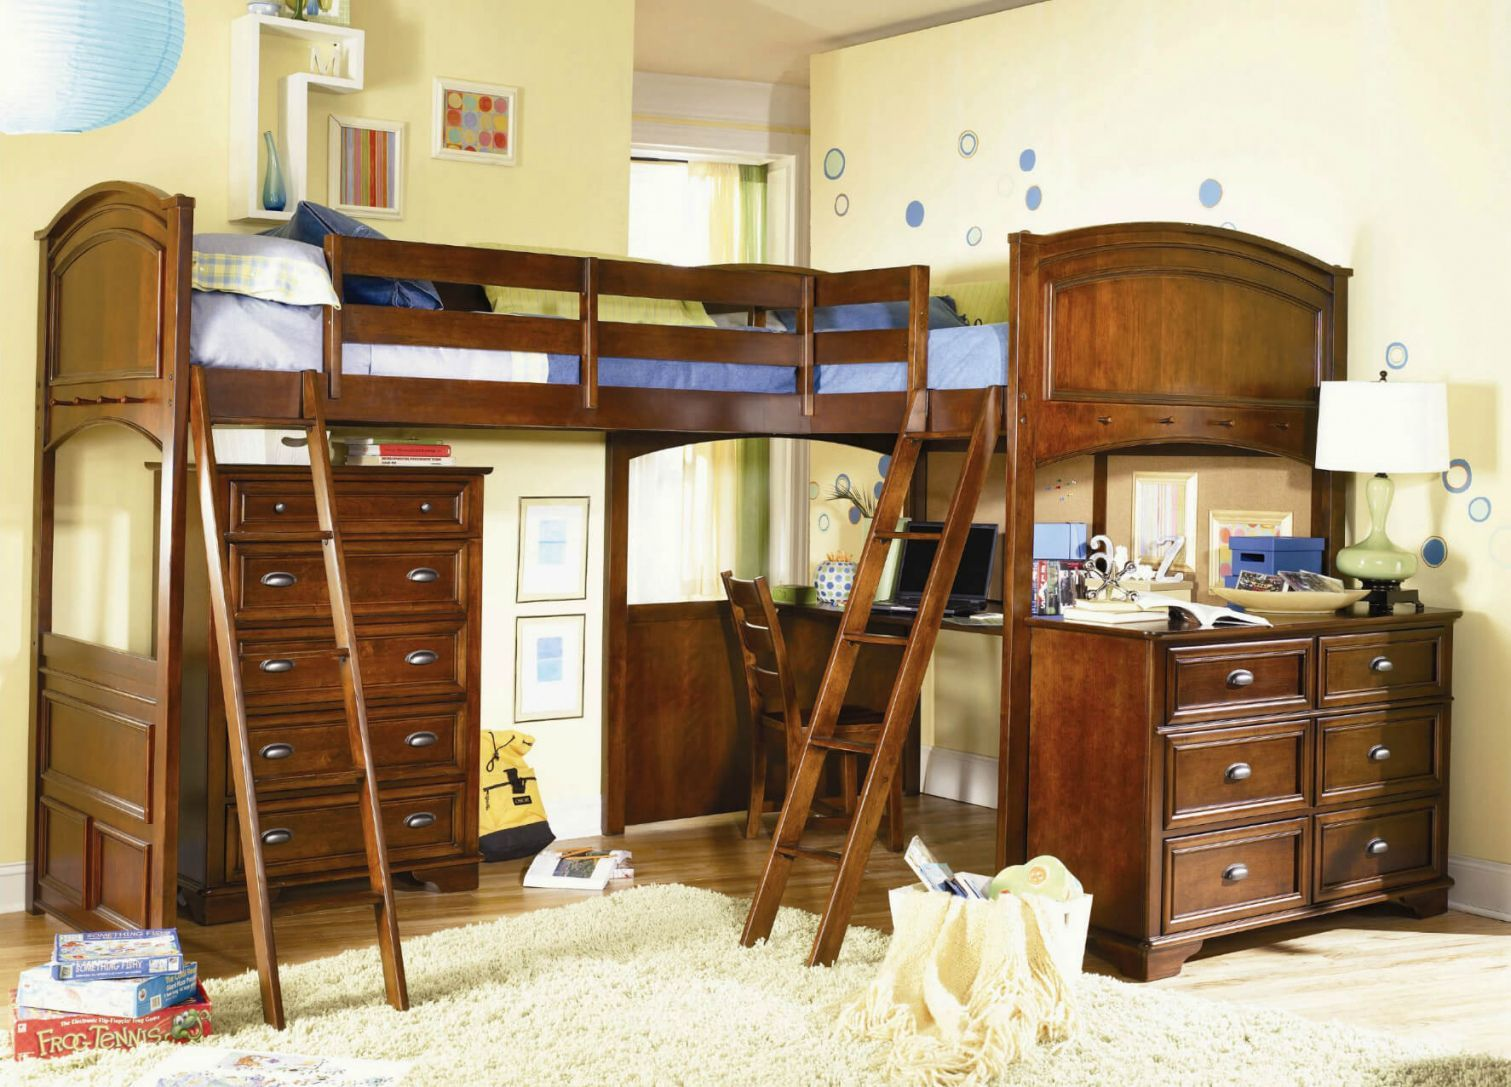 Bunk bed loft ideas  Loft Style Bunk Bed  Best Paint for Interior Check more at